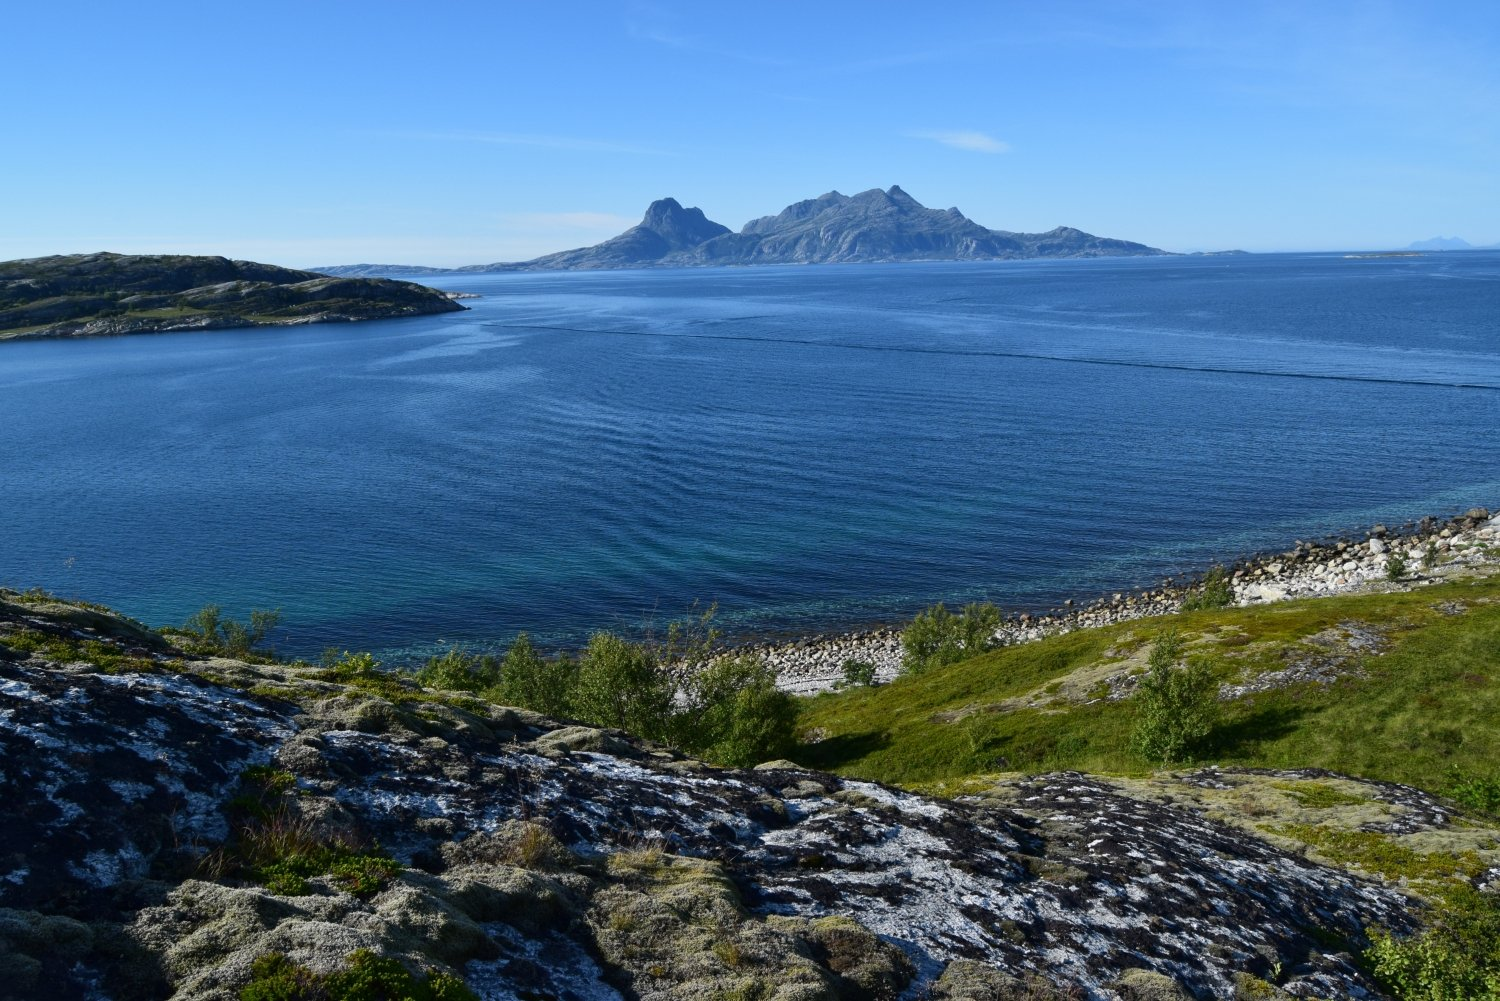 Landegode island seen from Hjertøya